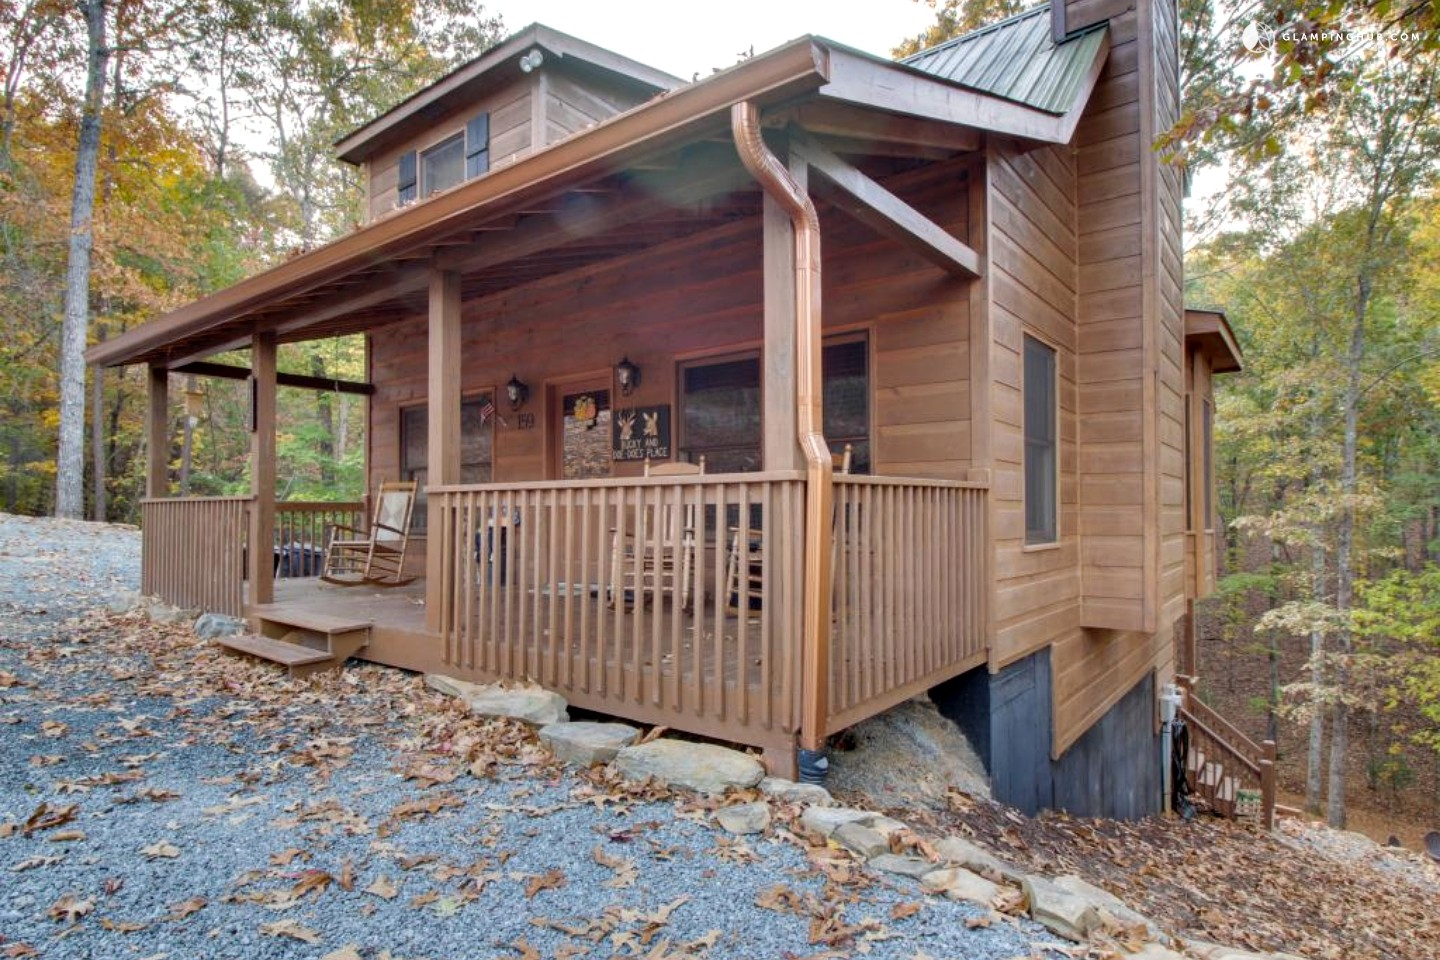 Cabin near the blue ridge mountains in ellijay georgia for Ellijay cabins for rent by owner